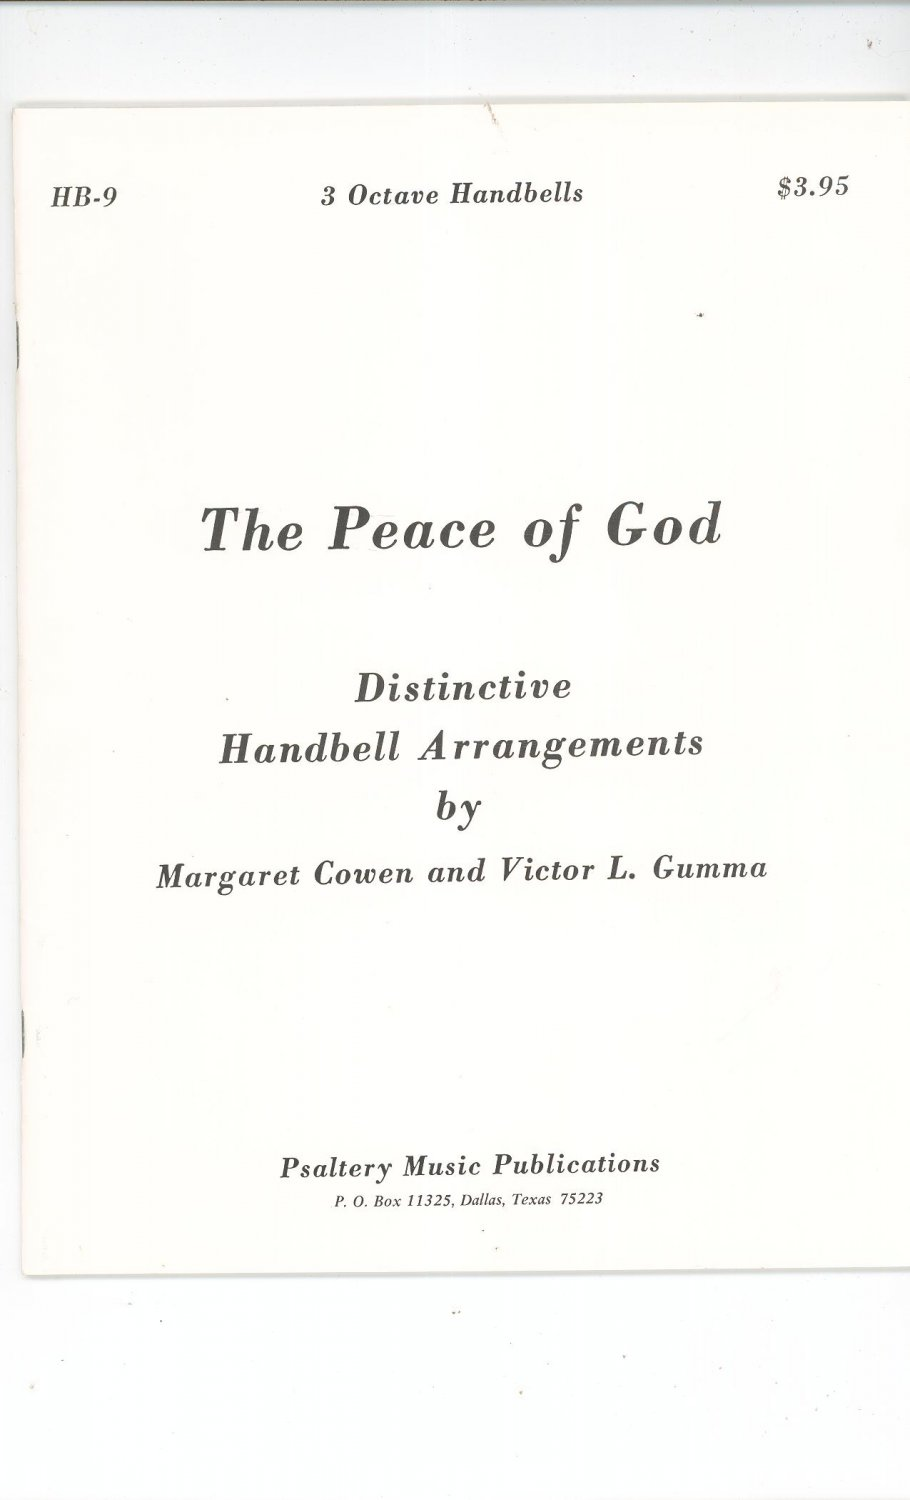 The Peace Of God Handbell Arrangements HB-9 By M. Cowen & V. Gumma